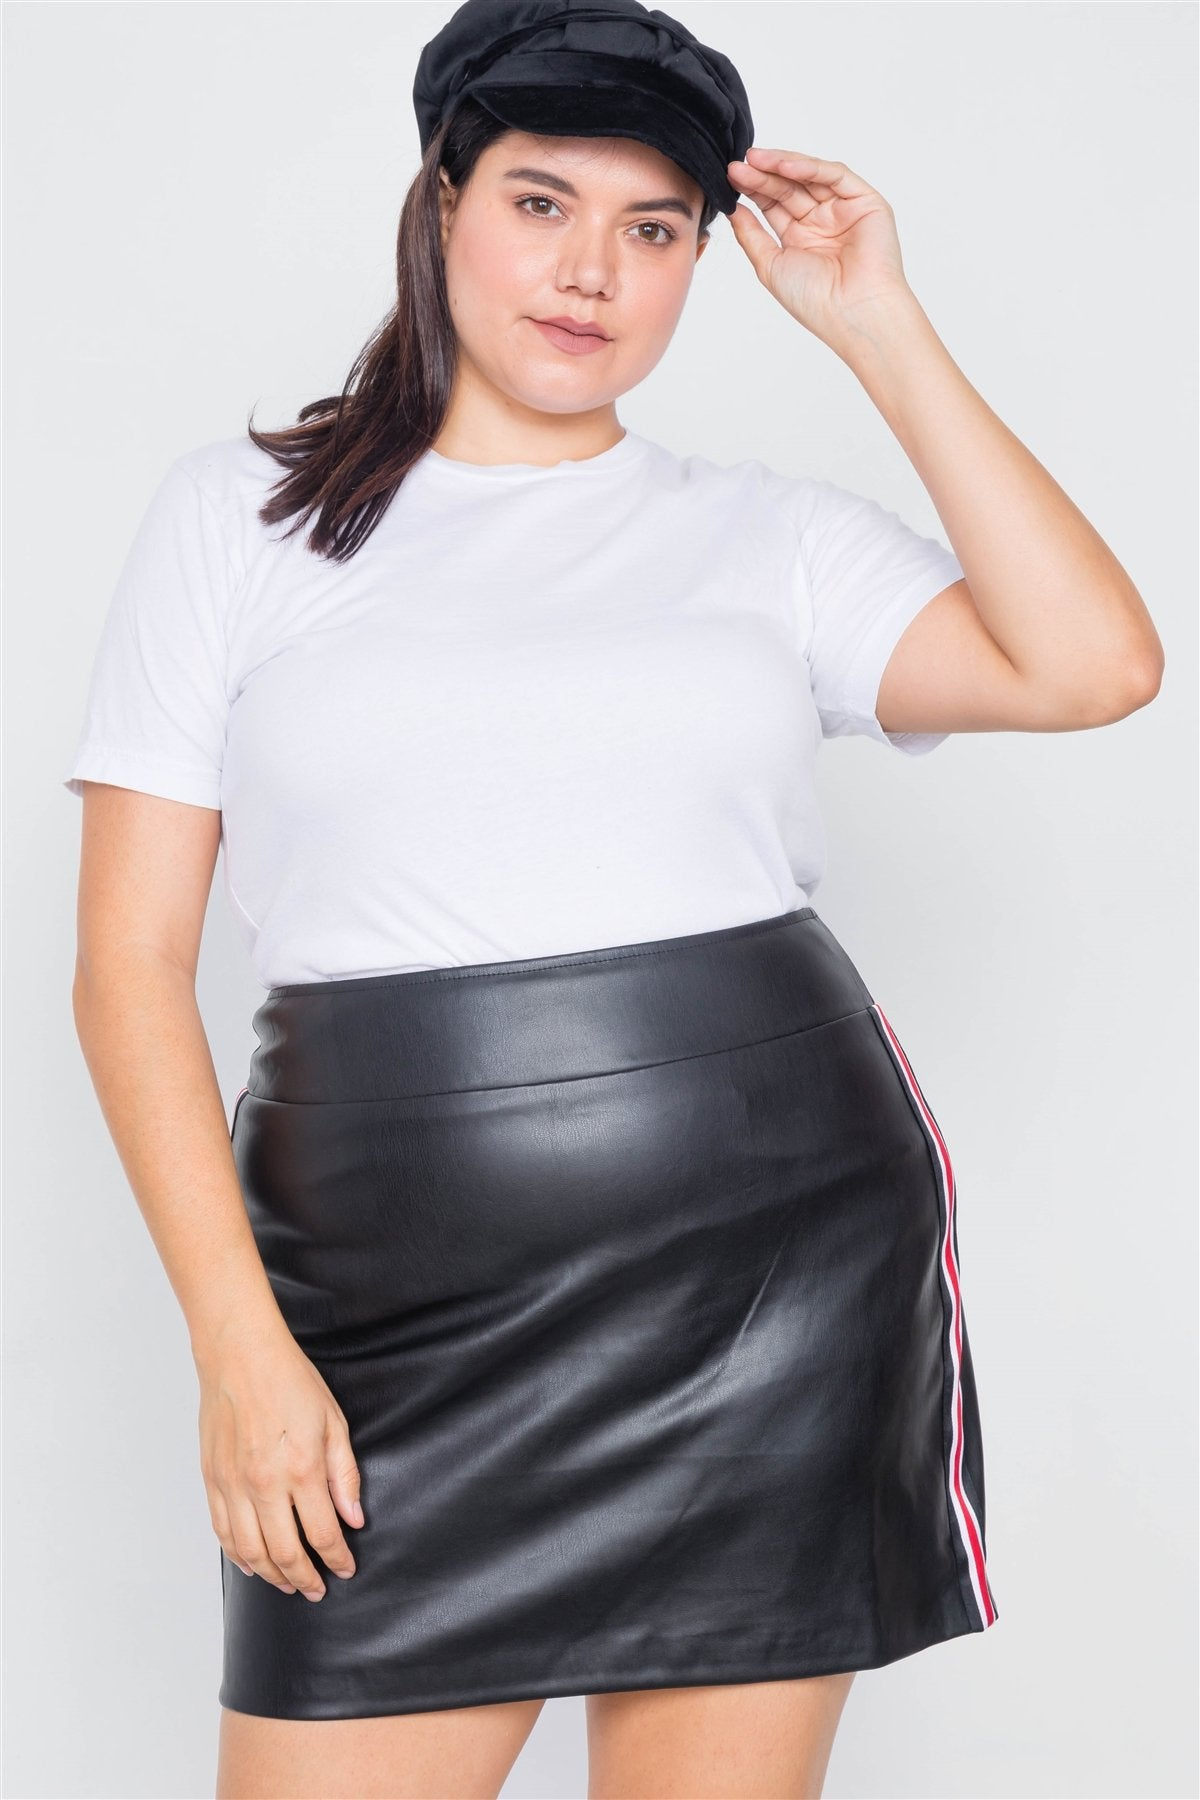 Retro Baddie Leather Skirt